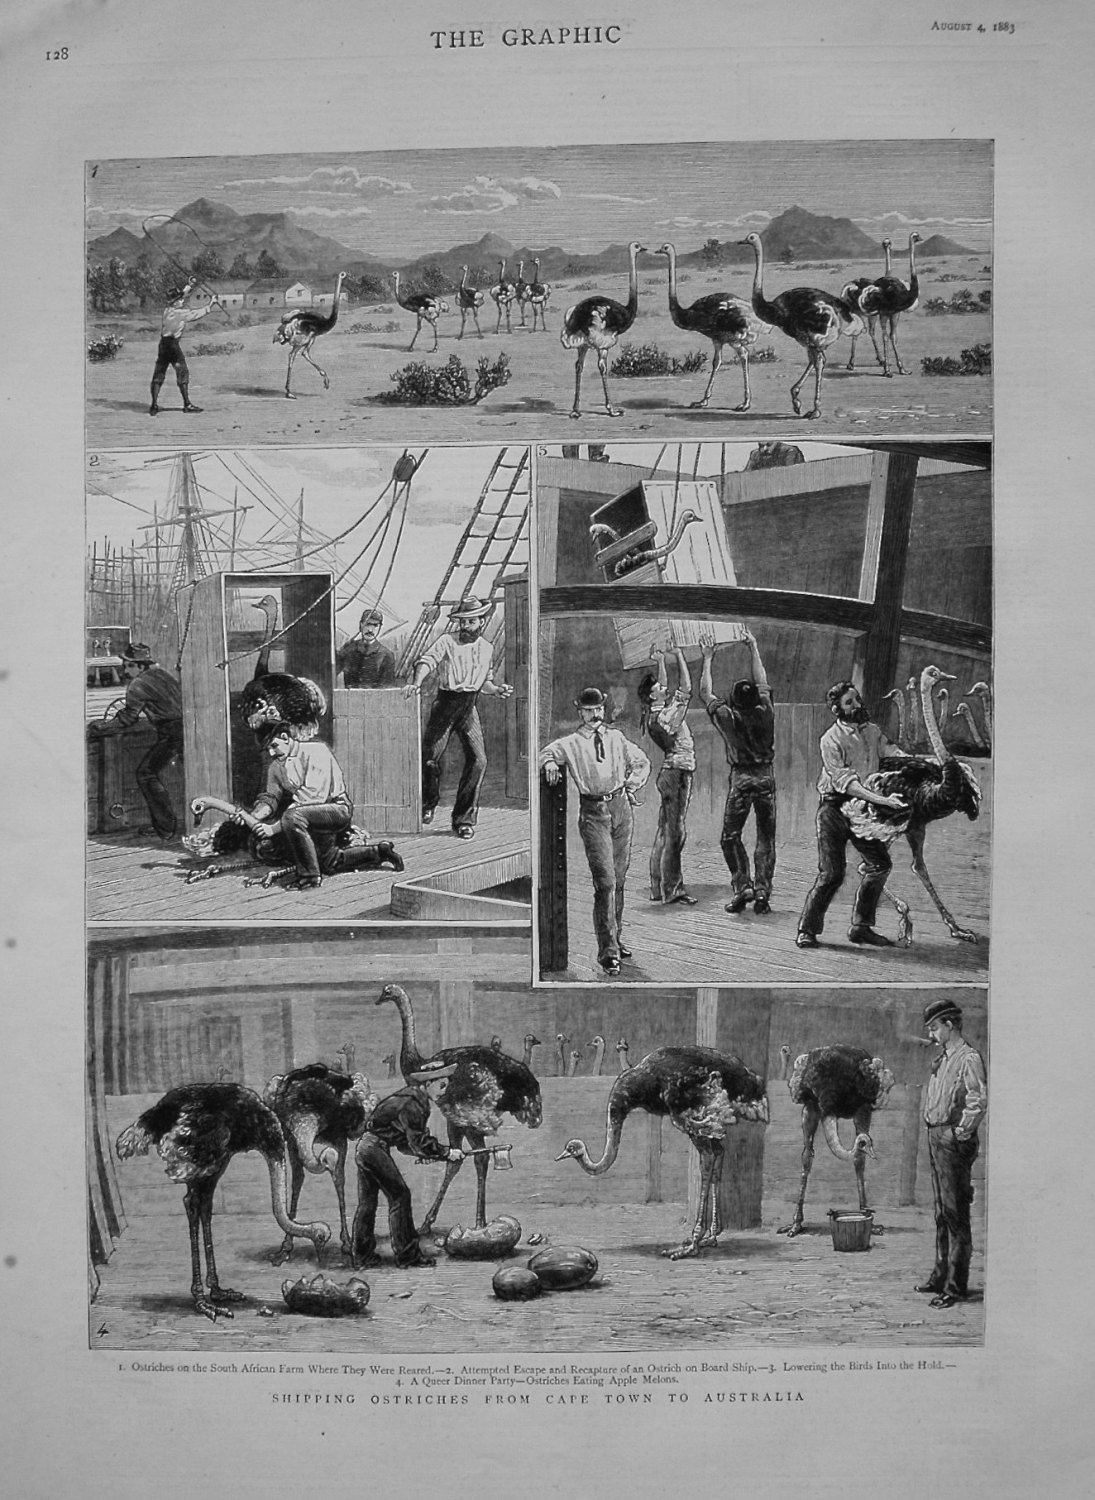 Shipping Ostriches from Cape Town to Australia. 1883